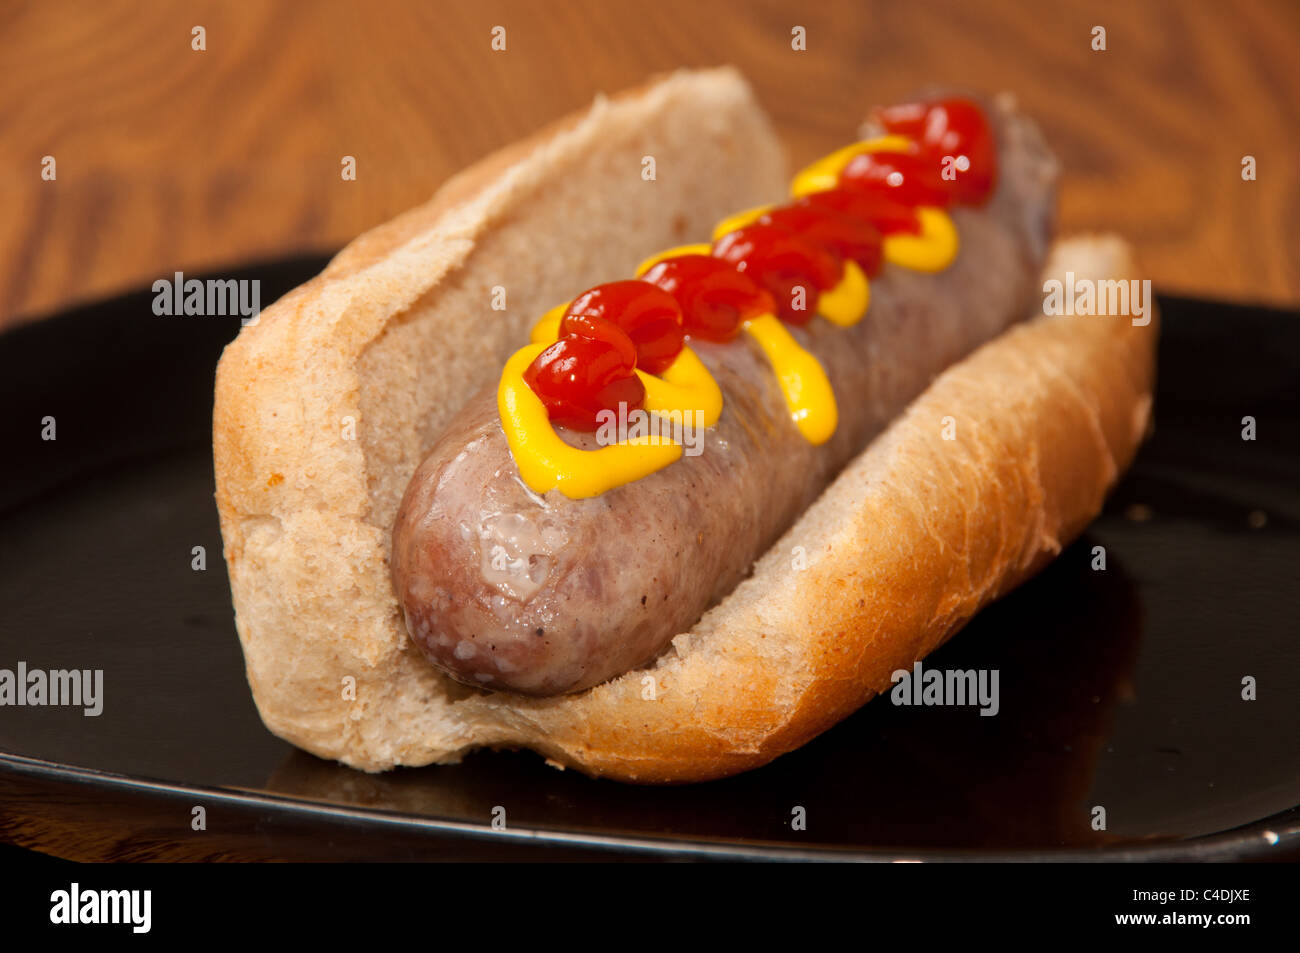 Cooked Bratwurst on a bun topped with Mustard and Ketchup - Stock Image